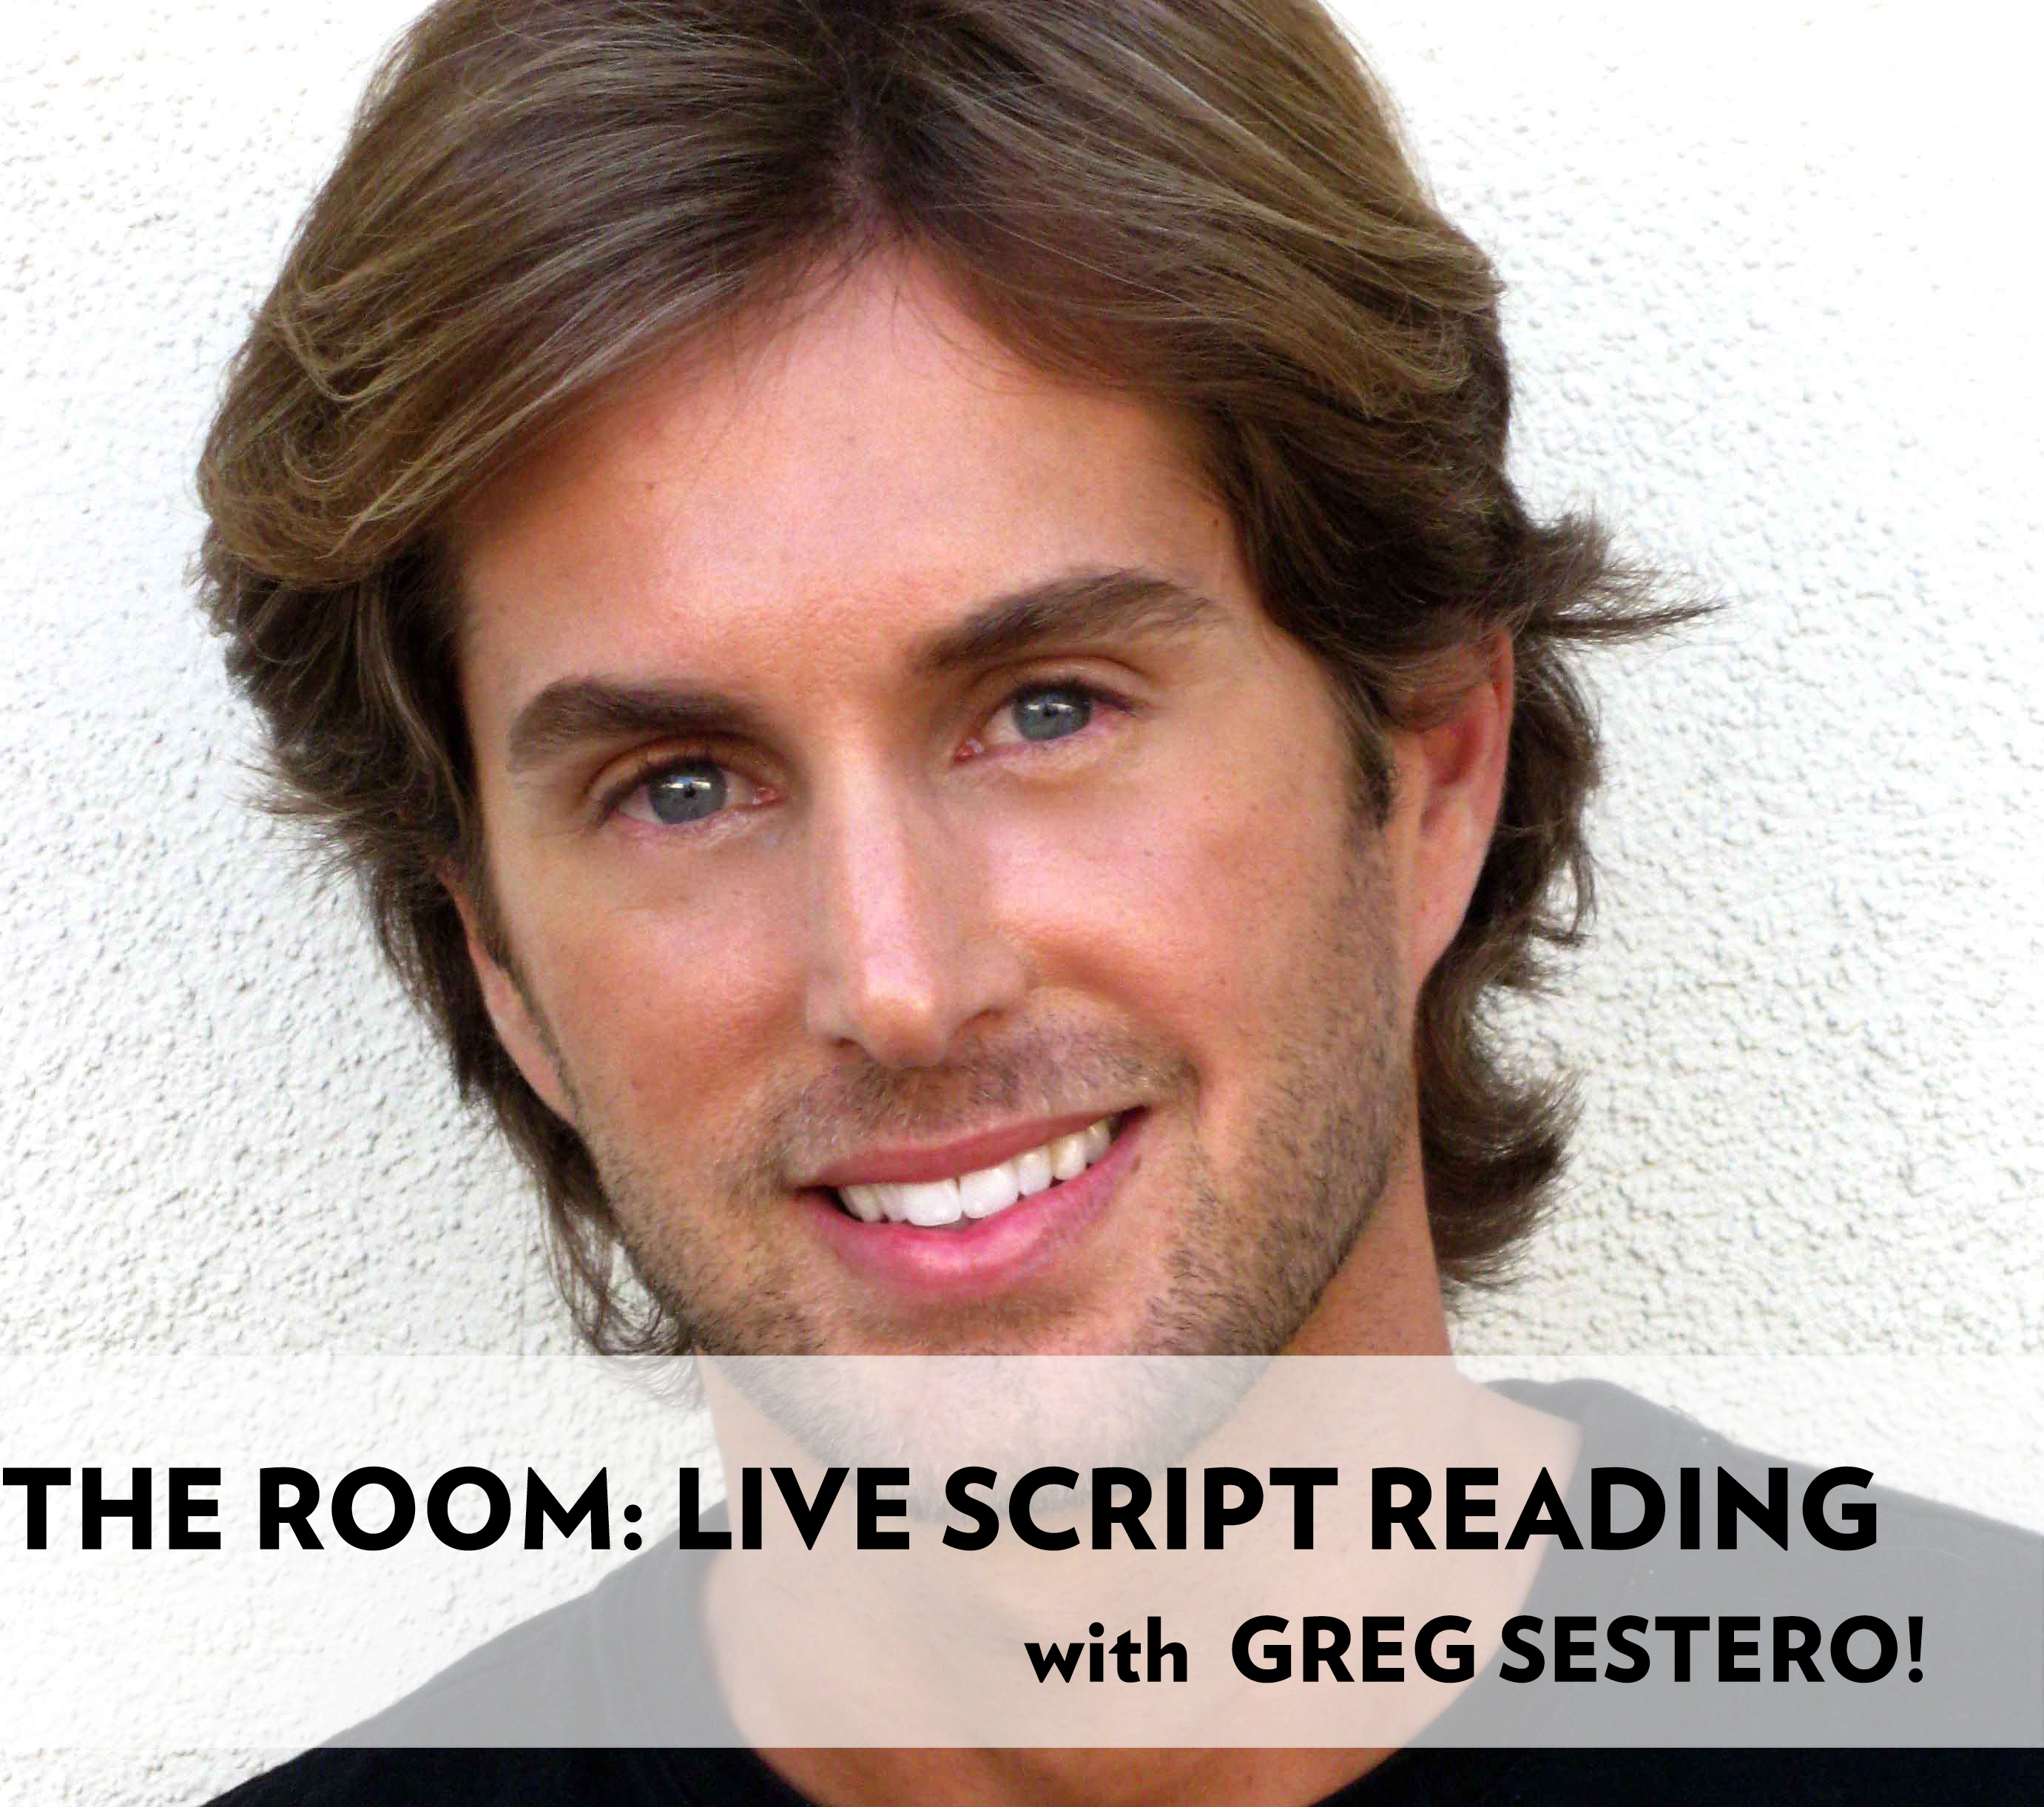 Poster for The Room Live Script Reading